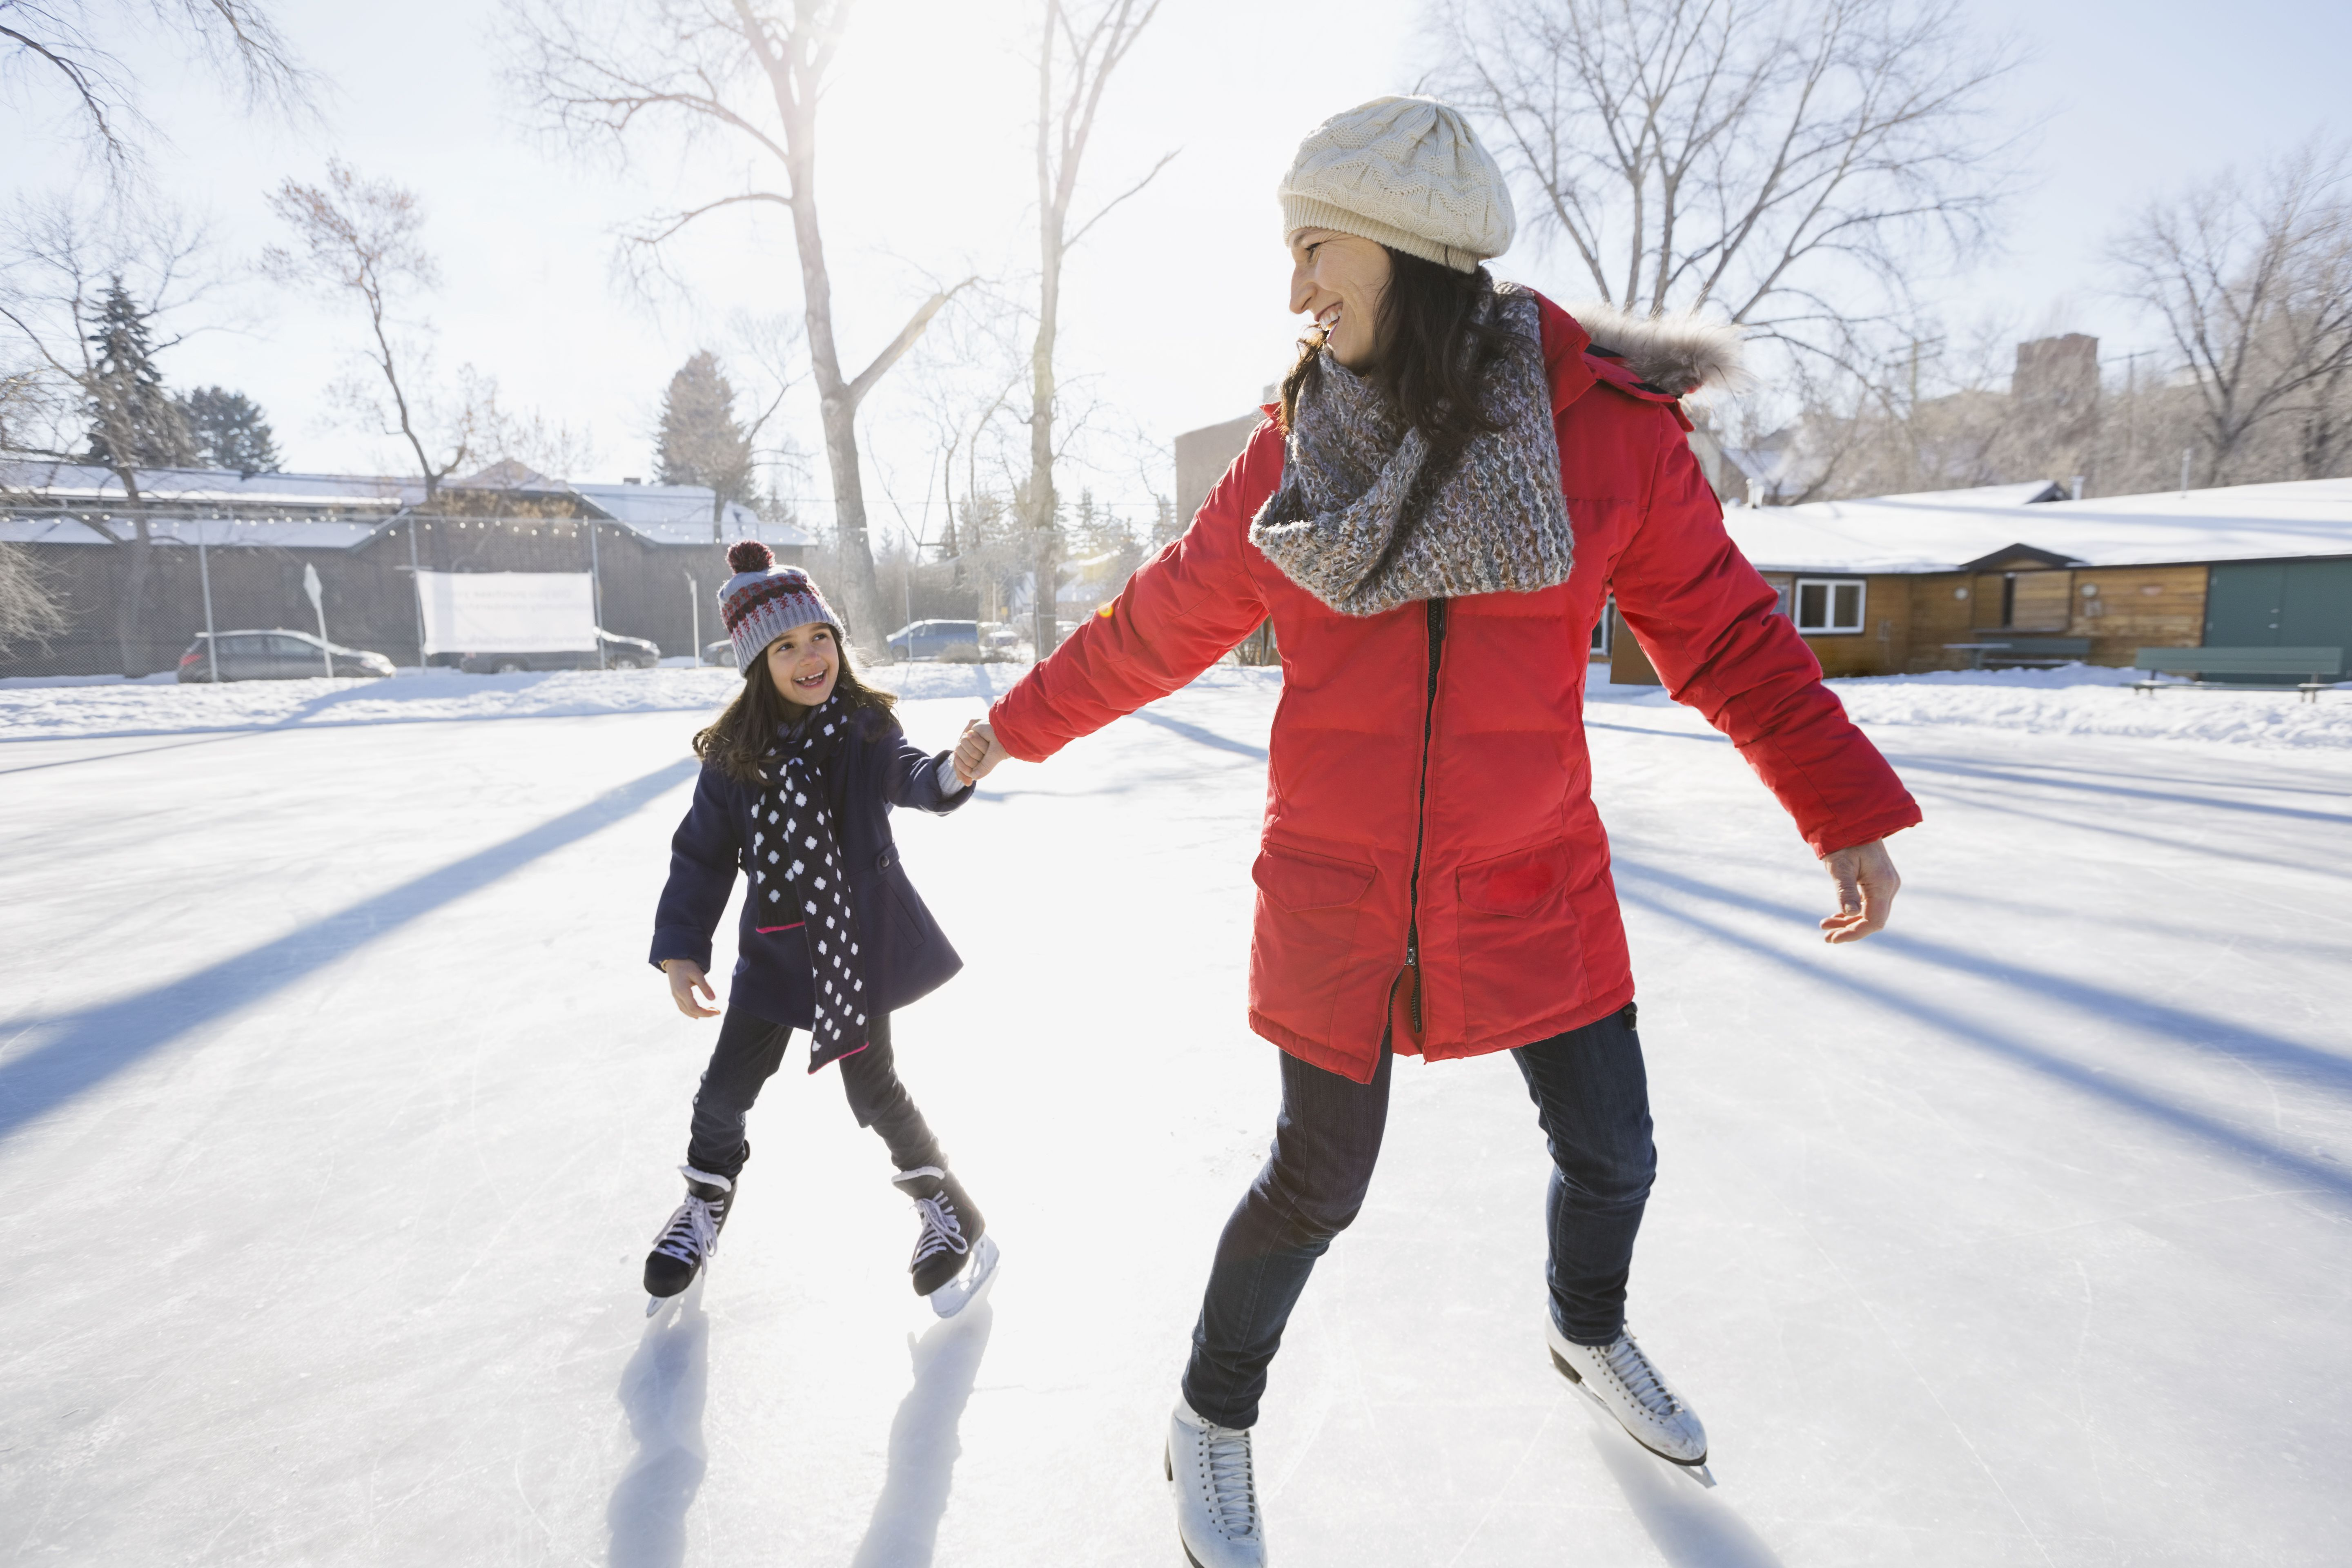 learn how to ice skate in  steps mother and daughter ice skating on rink